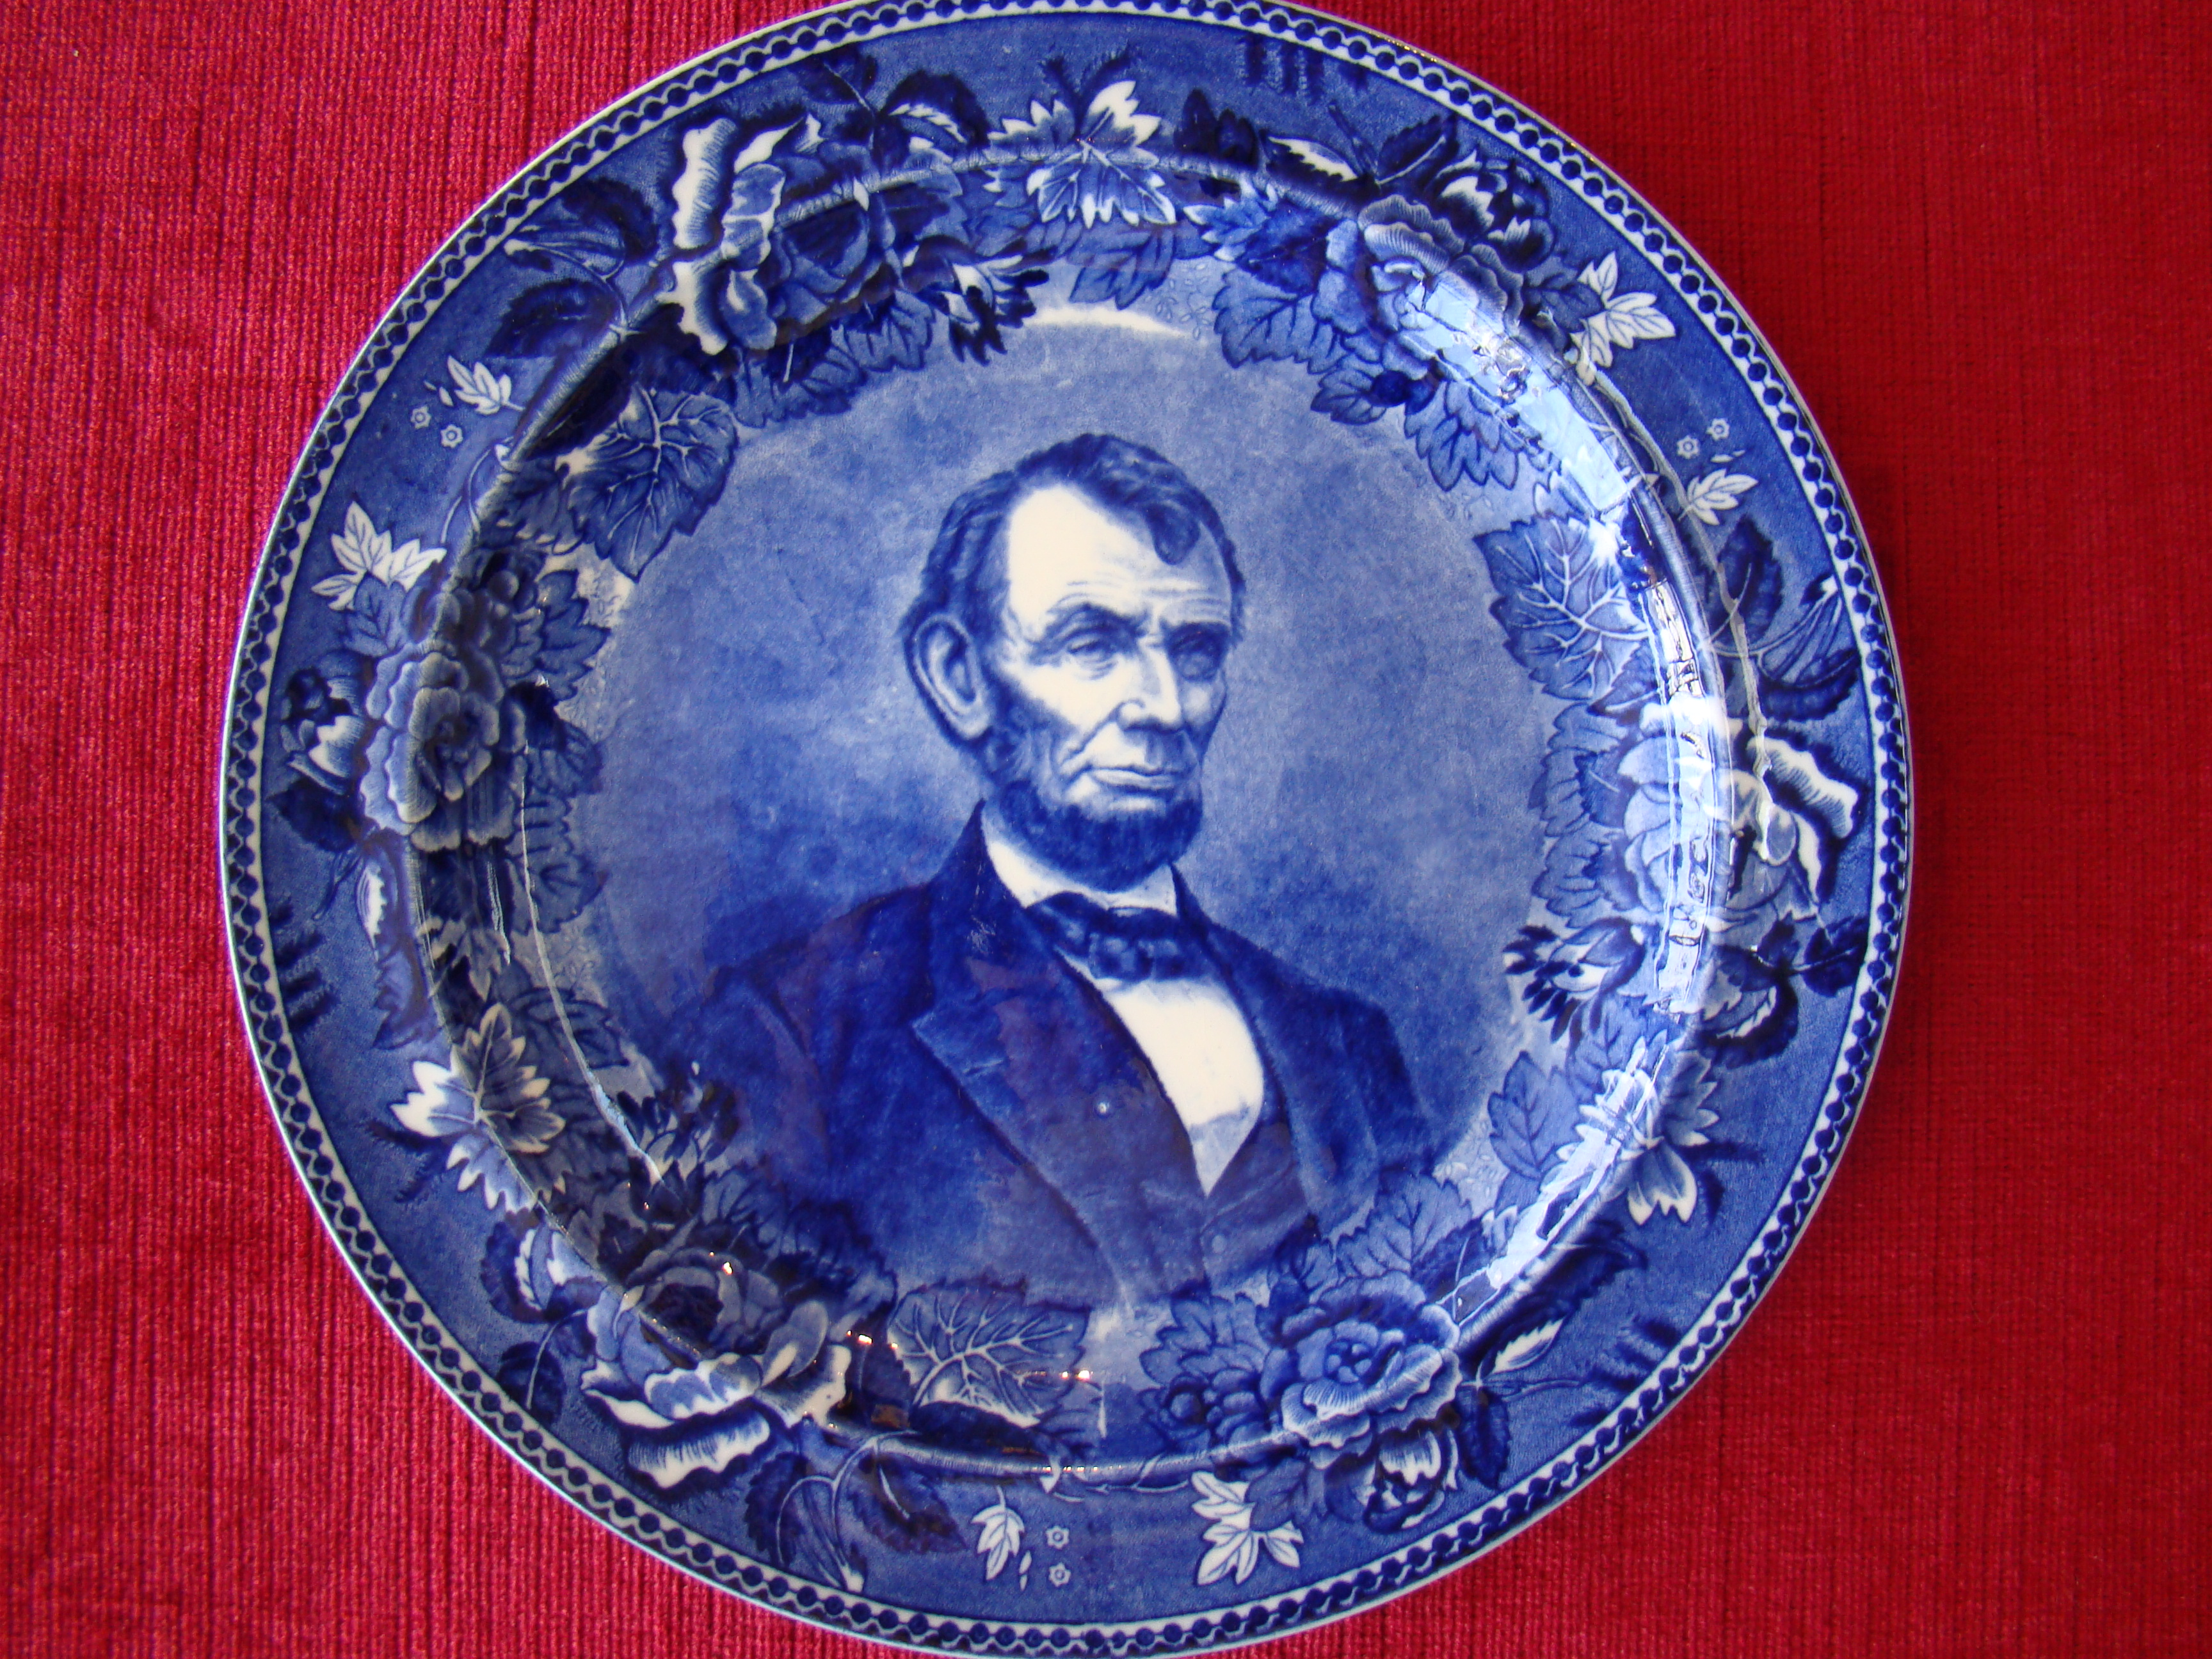 click to view detailed description of A fine vintage souvenir plate made by Wedgwood circa 1900 depicting Abraham Lincoln